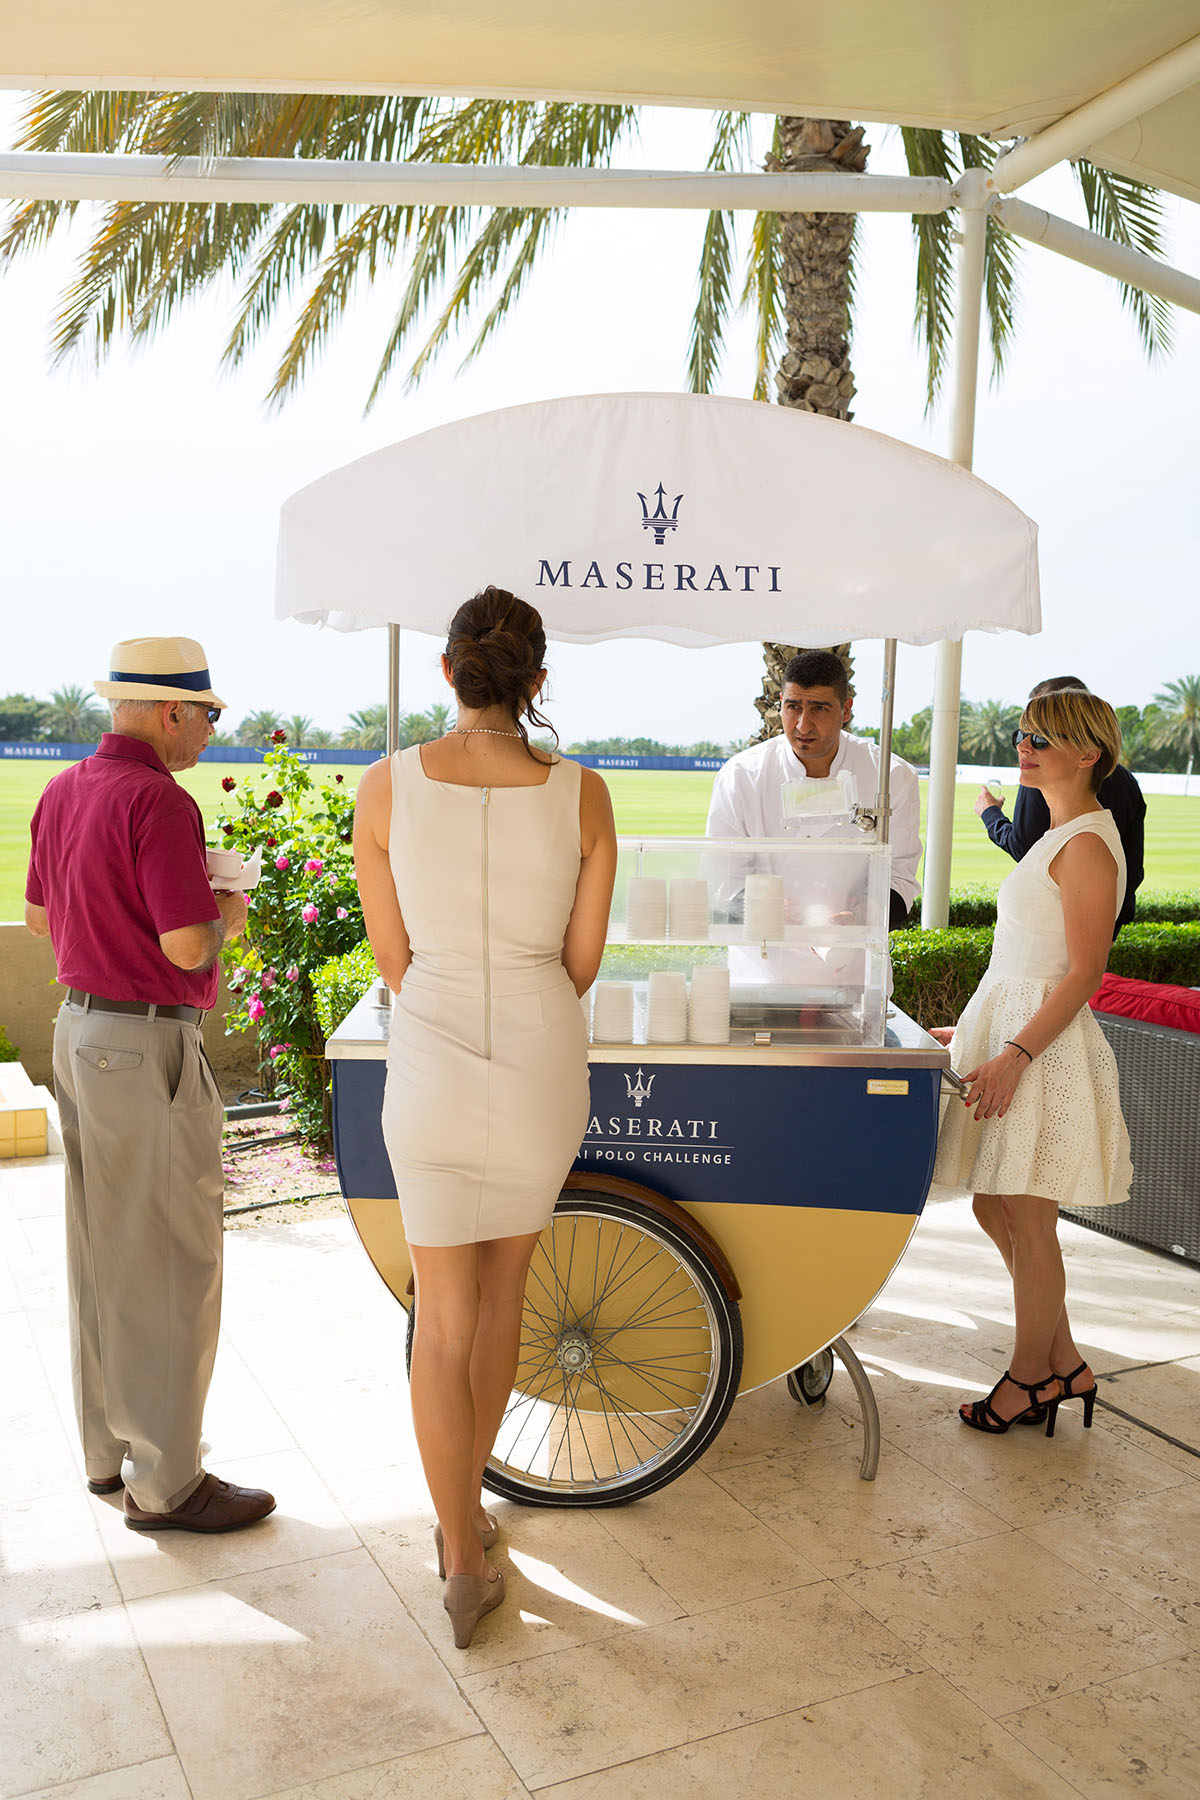 Gelato for the guests at the Maserati Polo event by Loesje Kessels Fashion Photographer Dubai